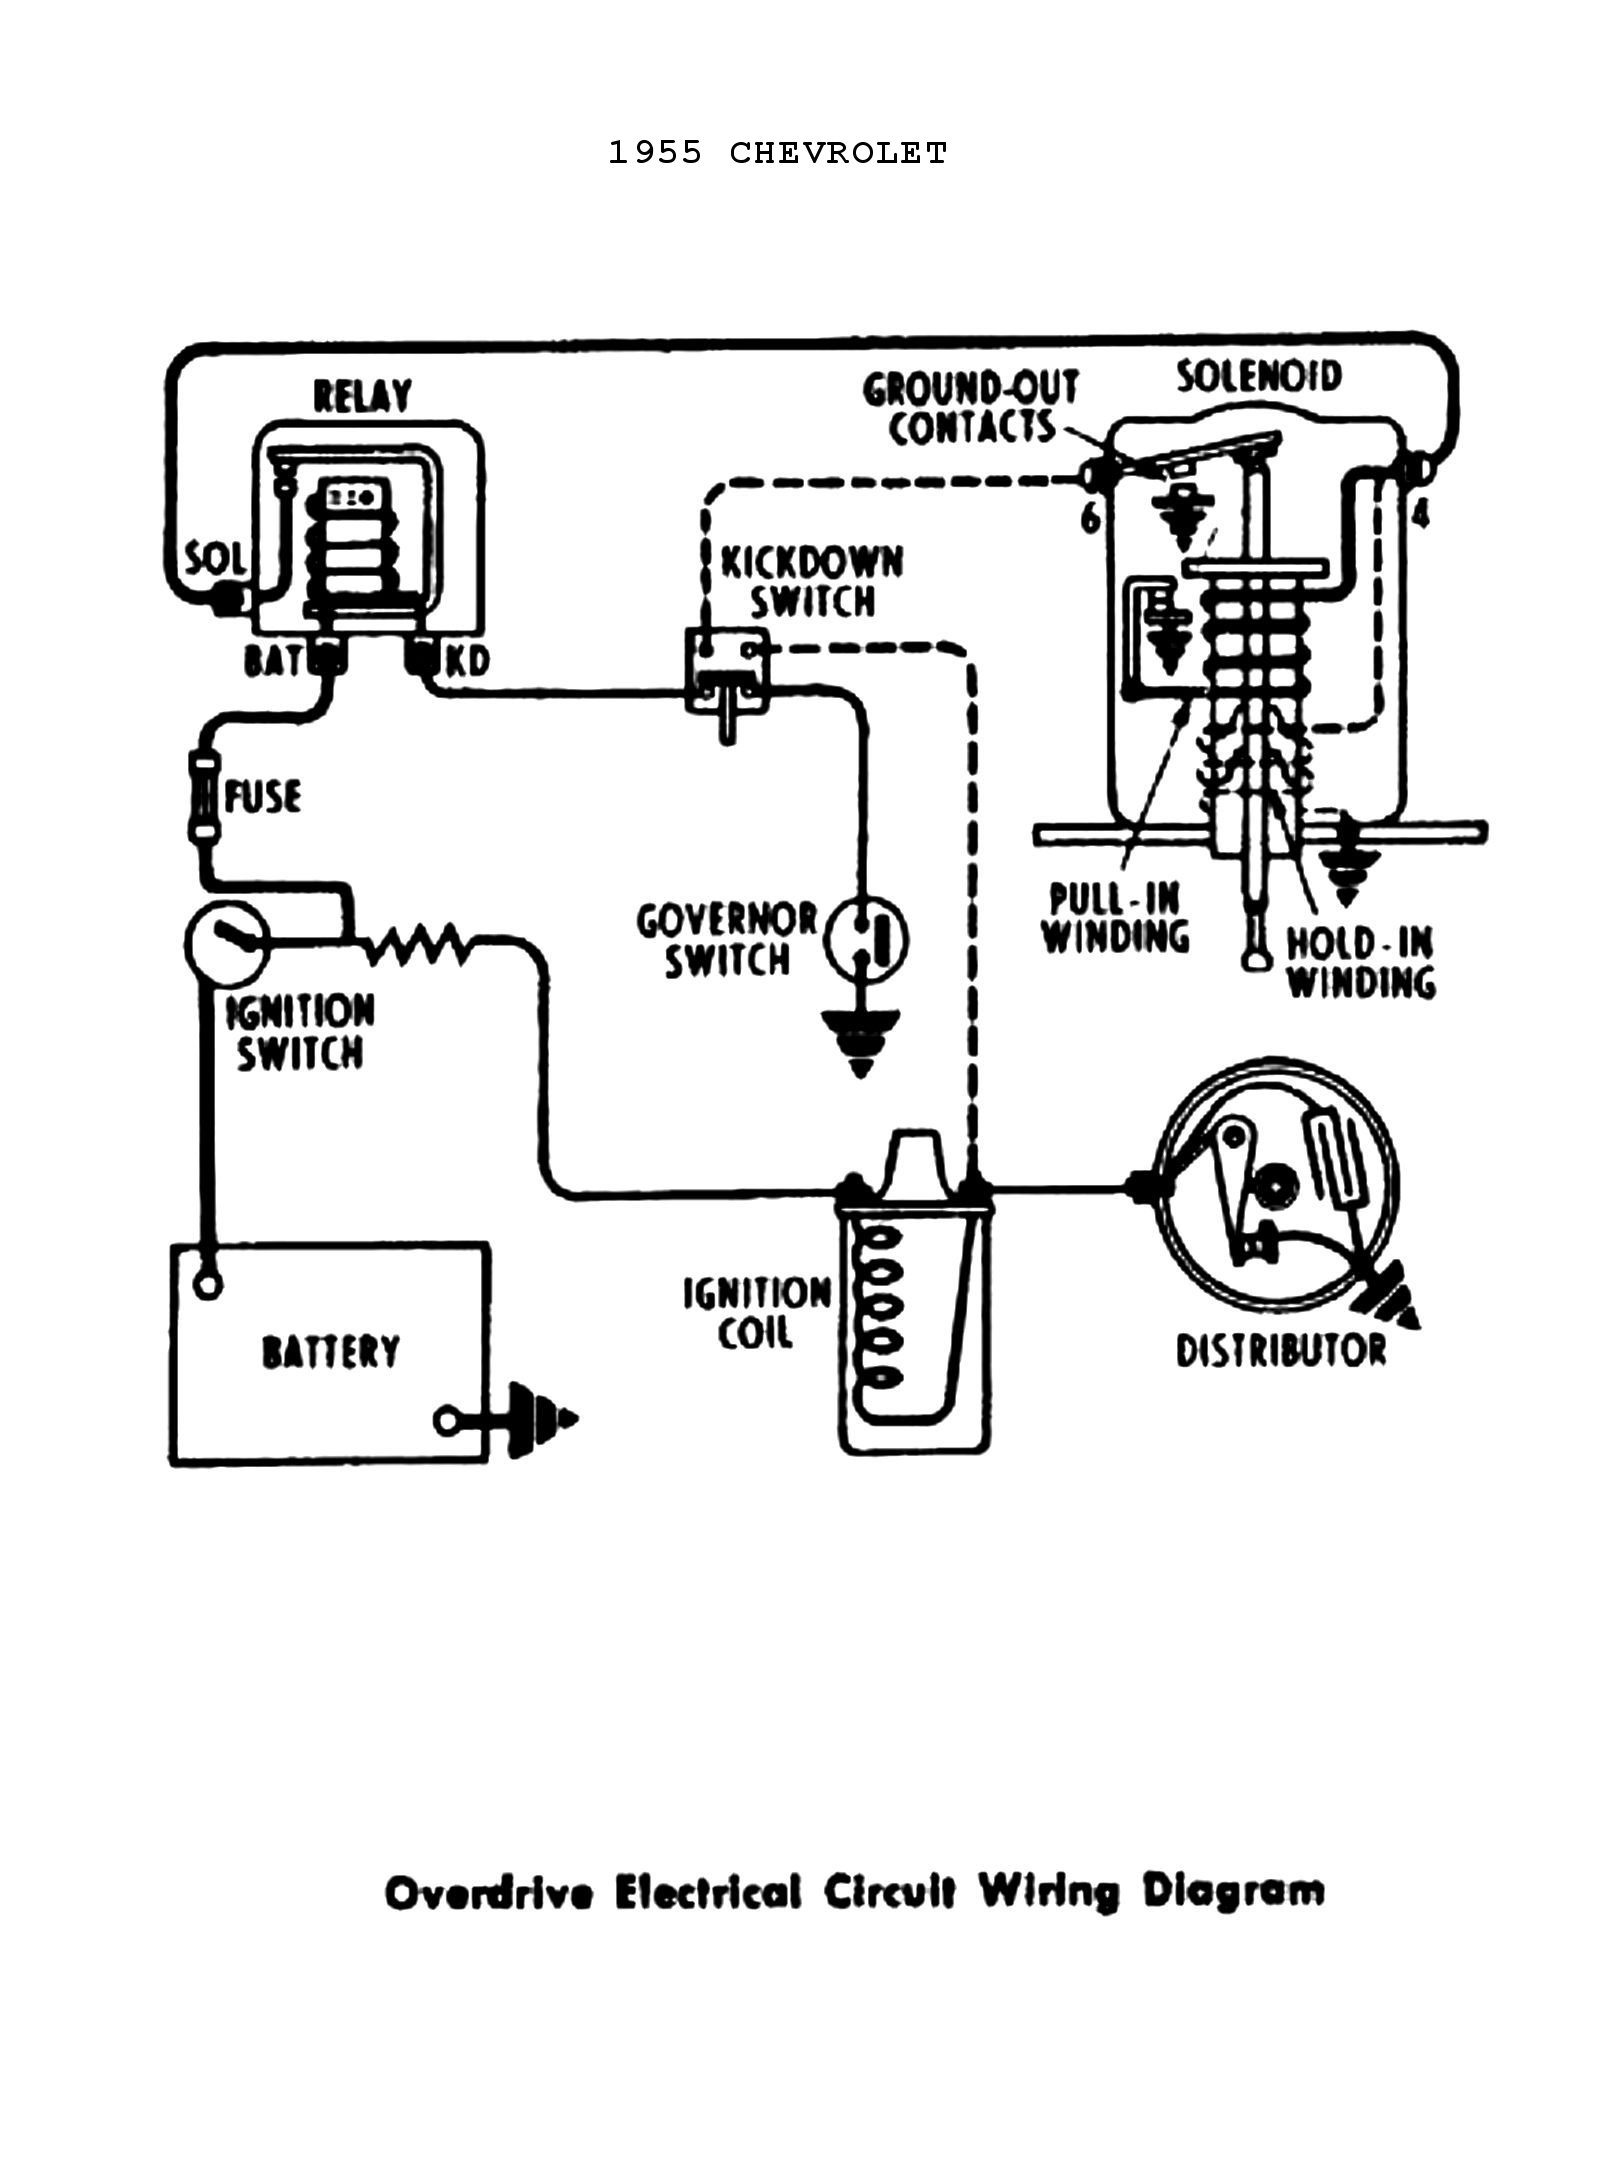 1986 Dodge Ram Ignition Switch Wiring Diagram Library Dual Radiator Fan Furthermore Electric Relay 1957 Chevy Heater Simple 1954 International Trucks